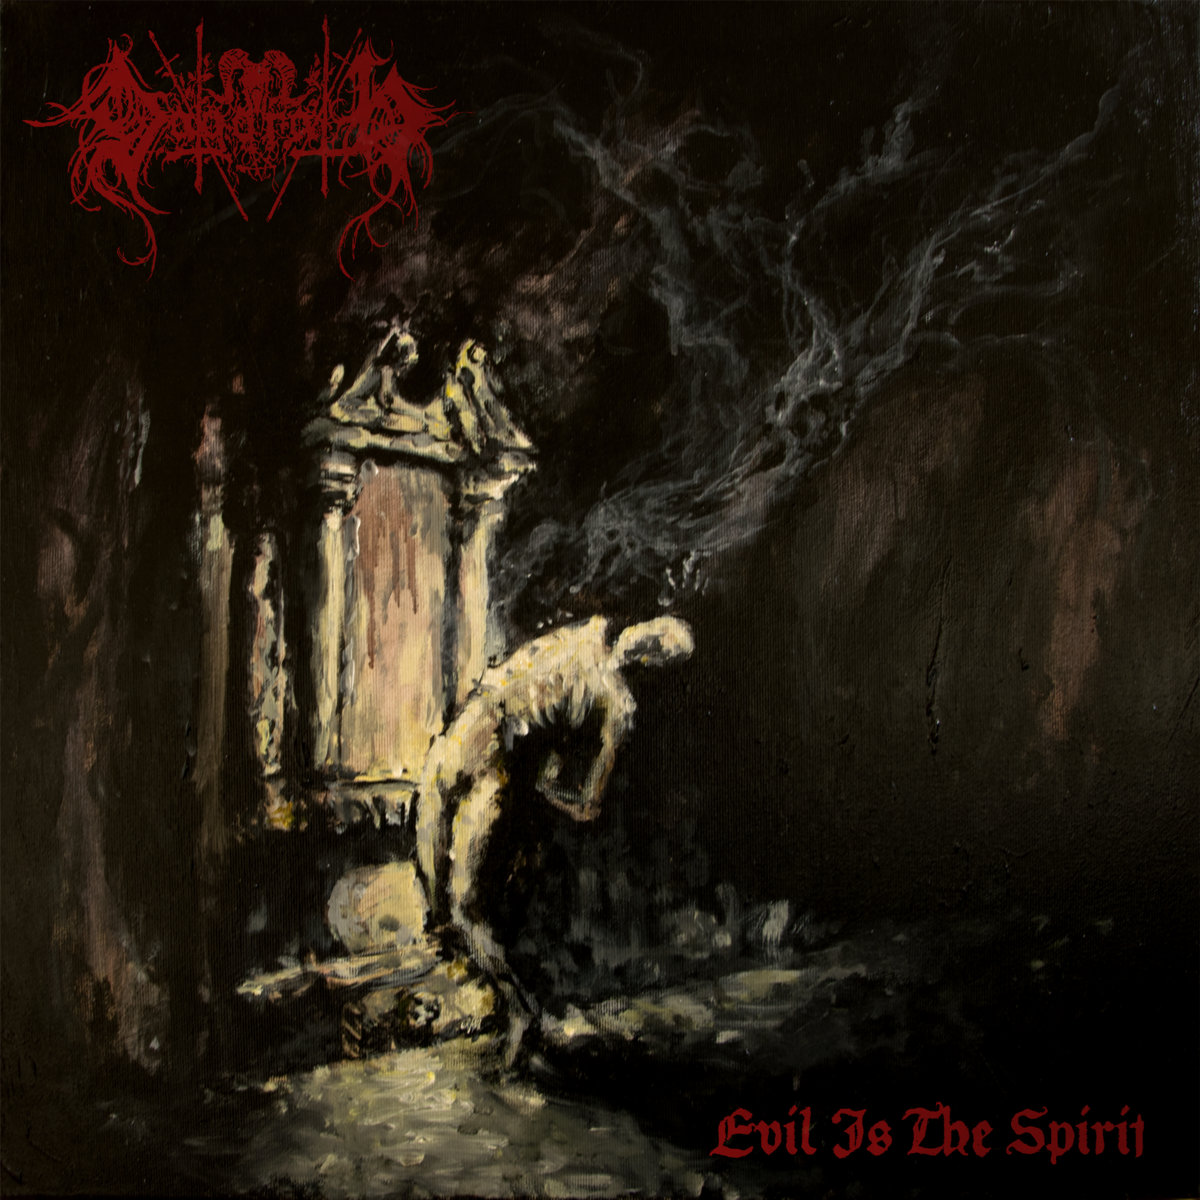 Dagorath - Evil Is The Spirit